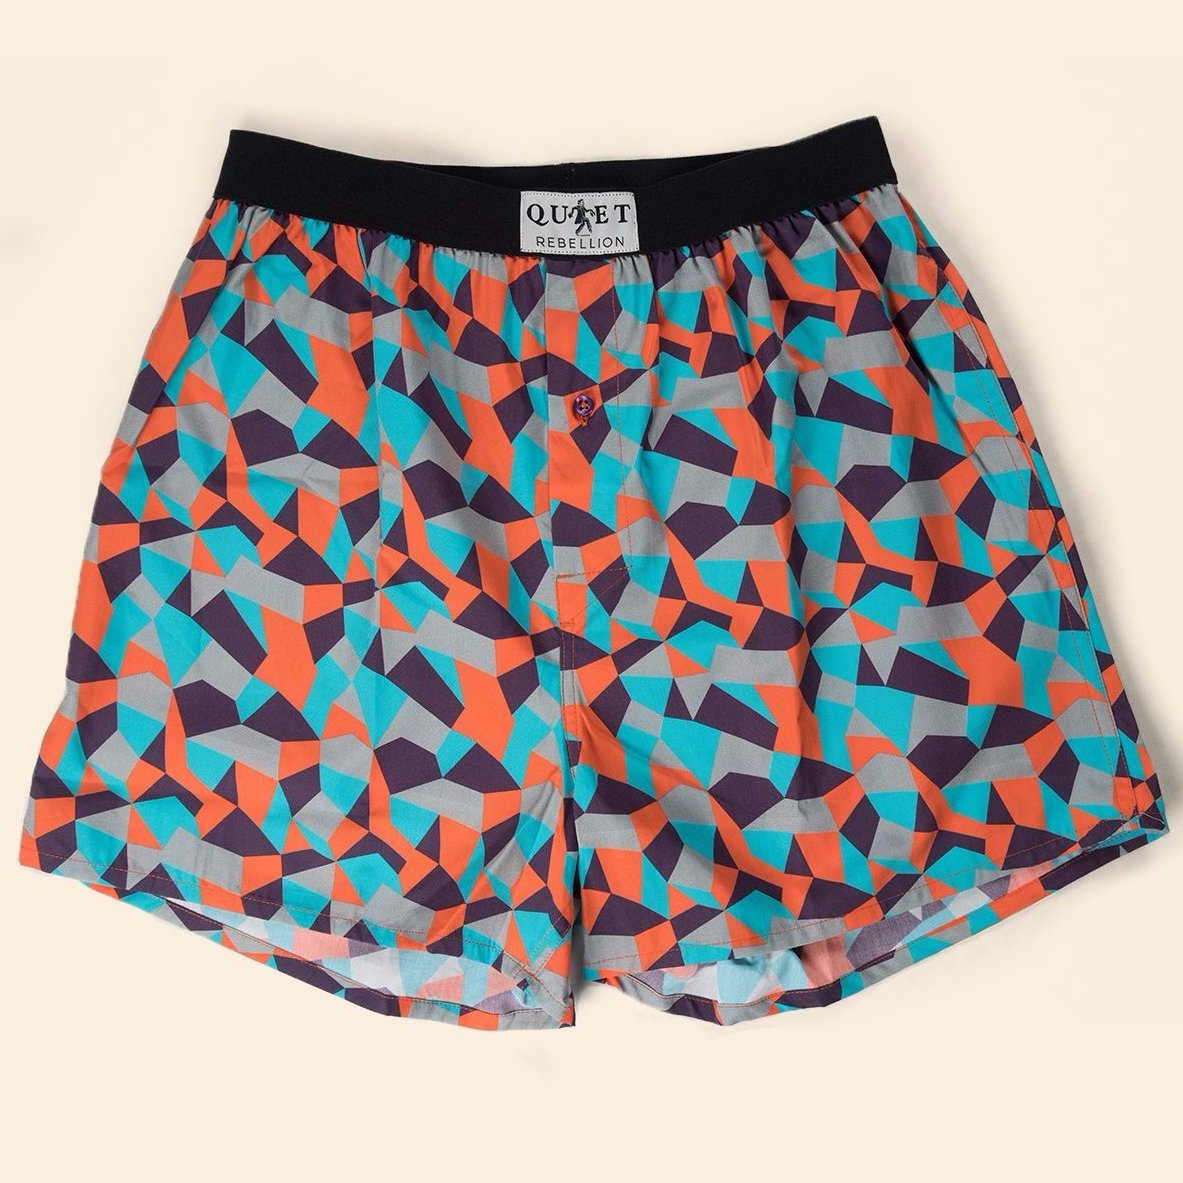 Picasso Boxers